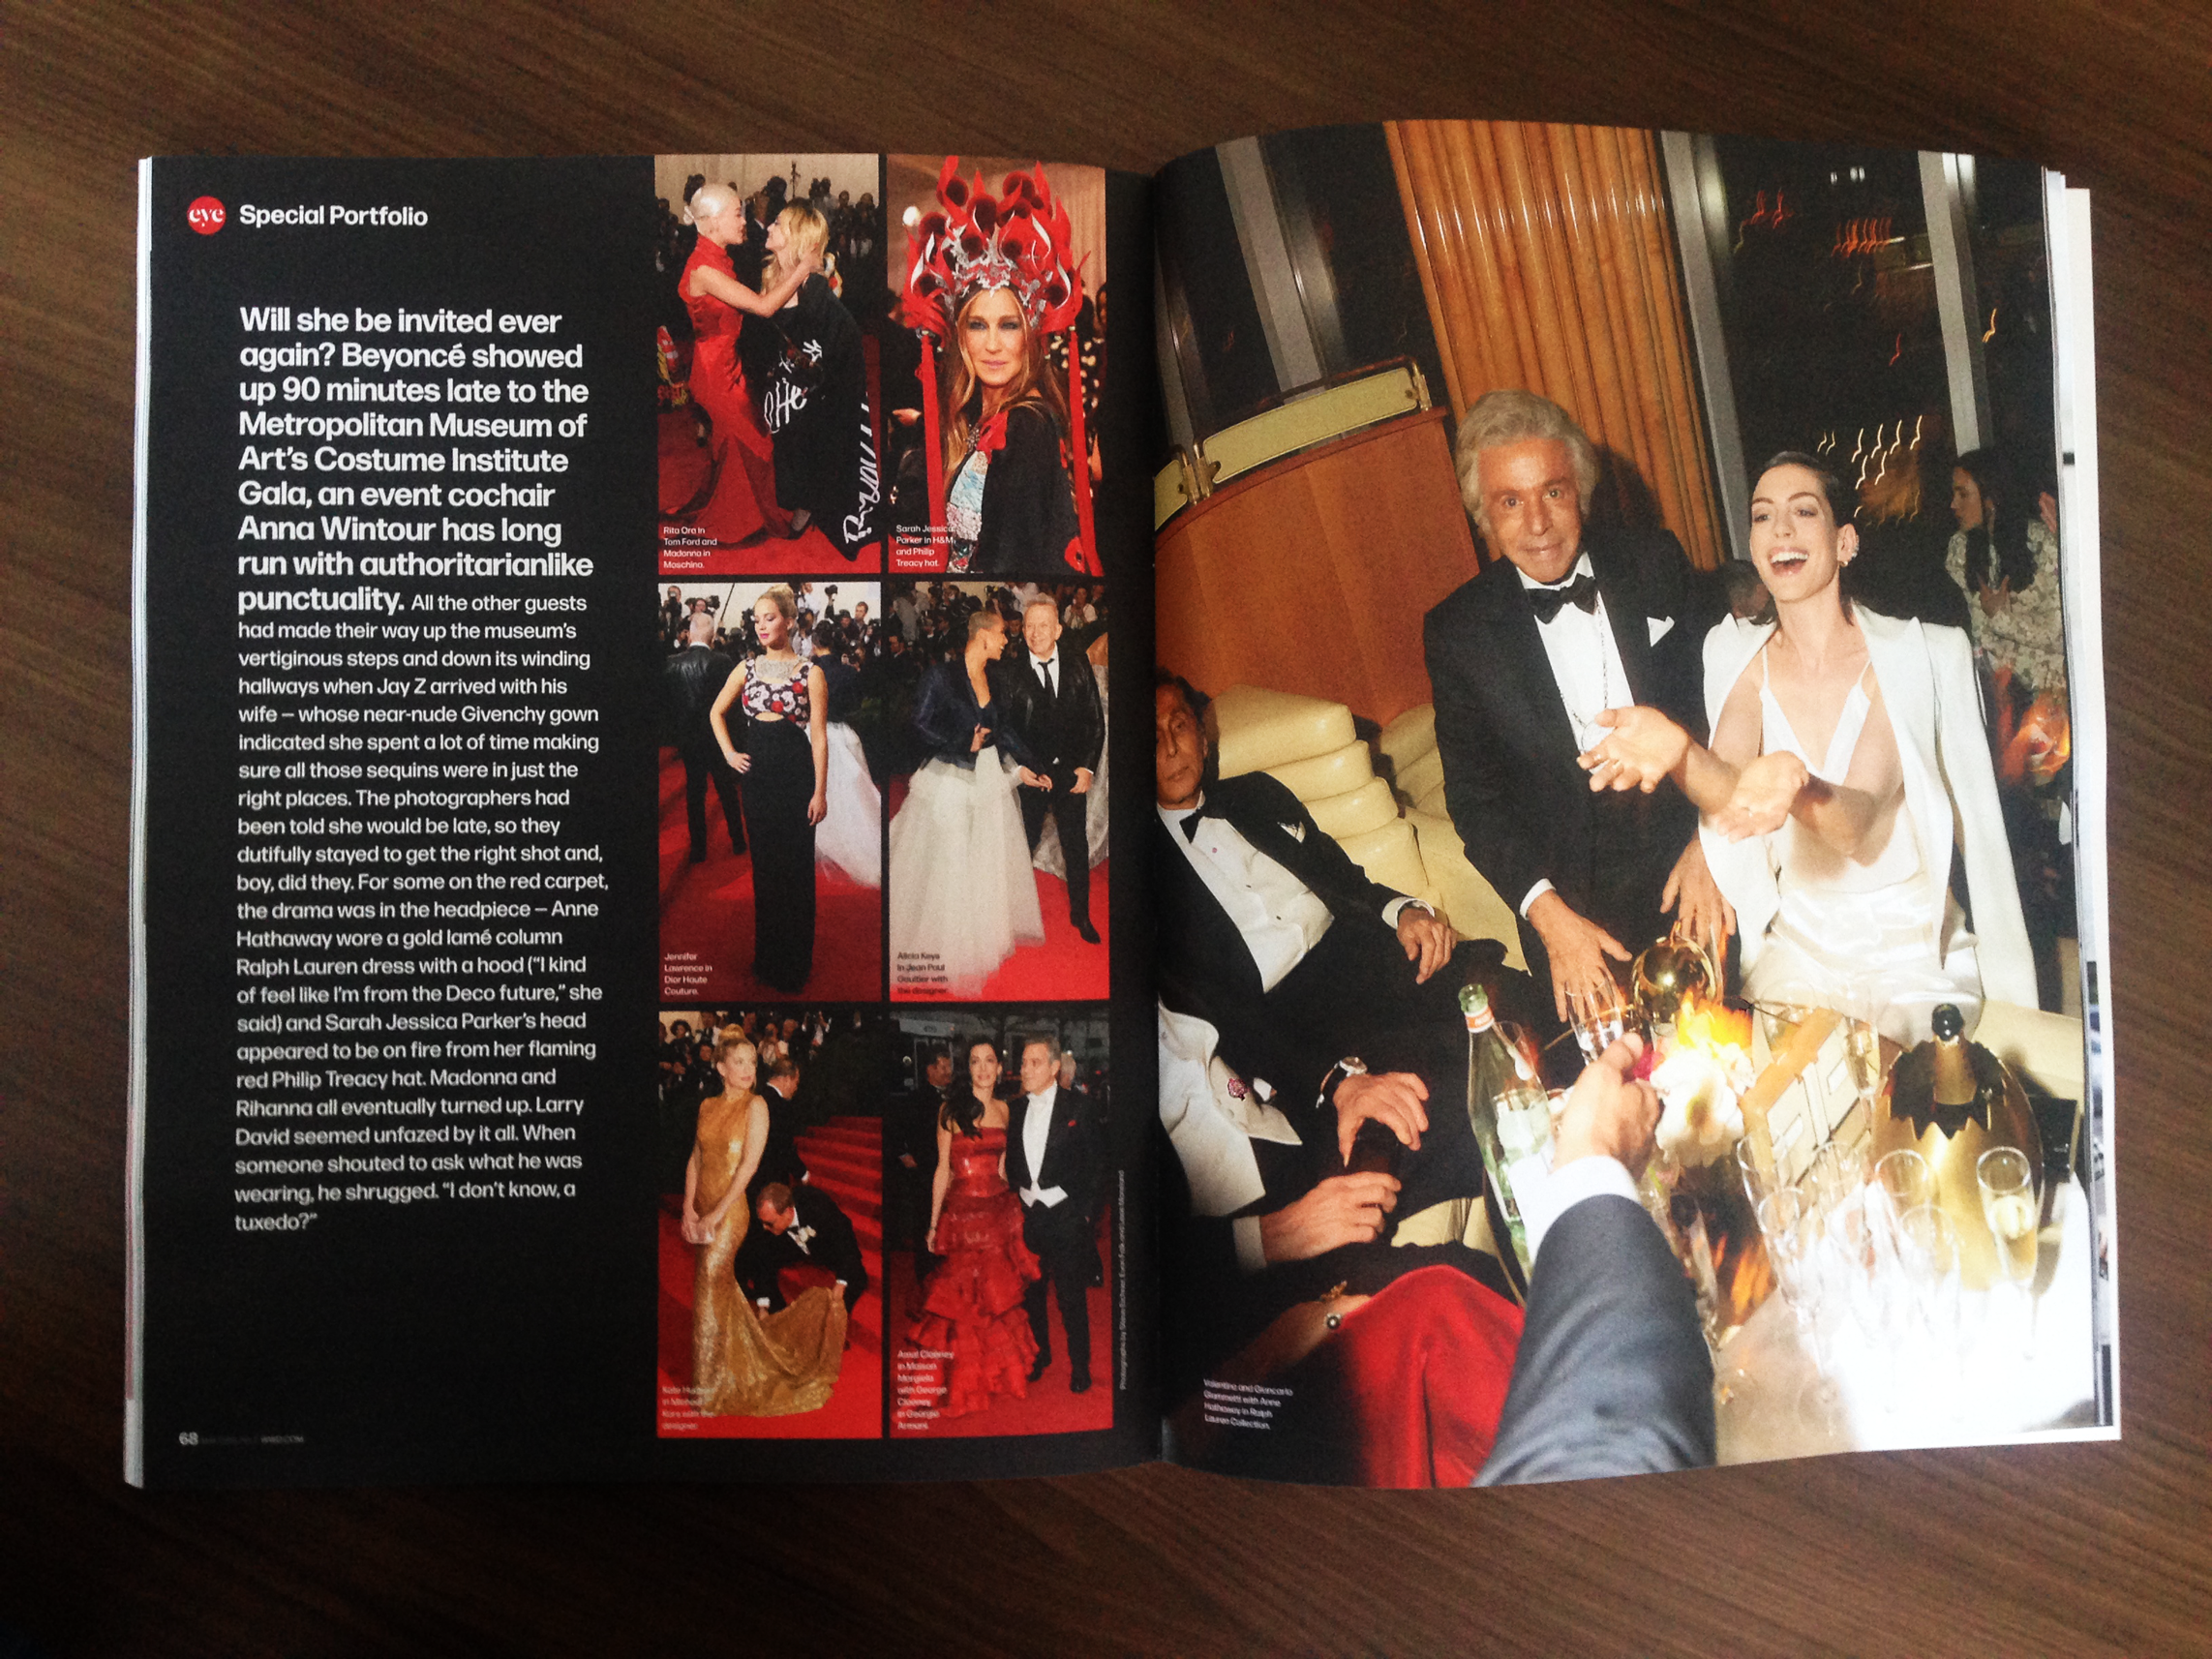 Second spread of the Met Gala package